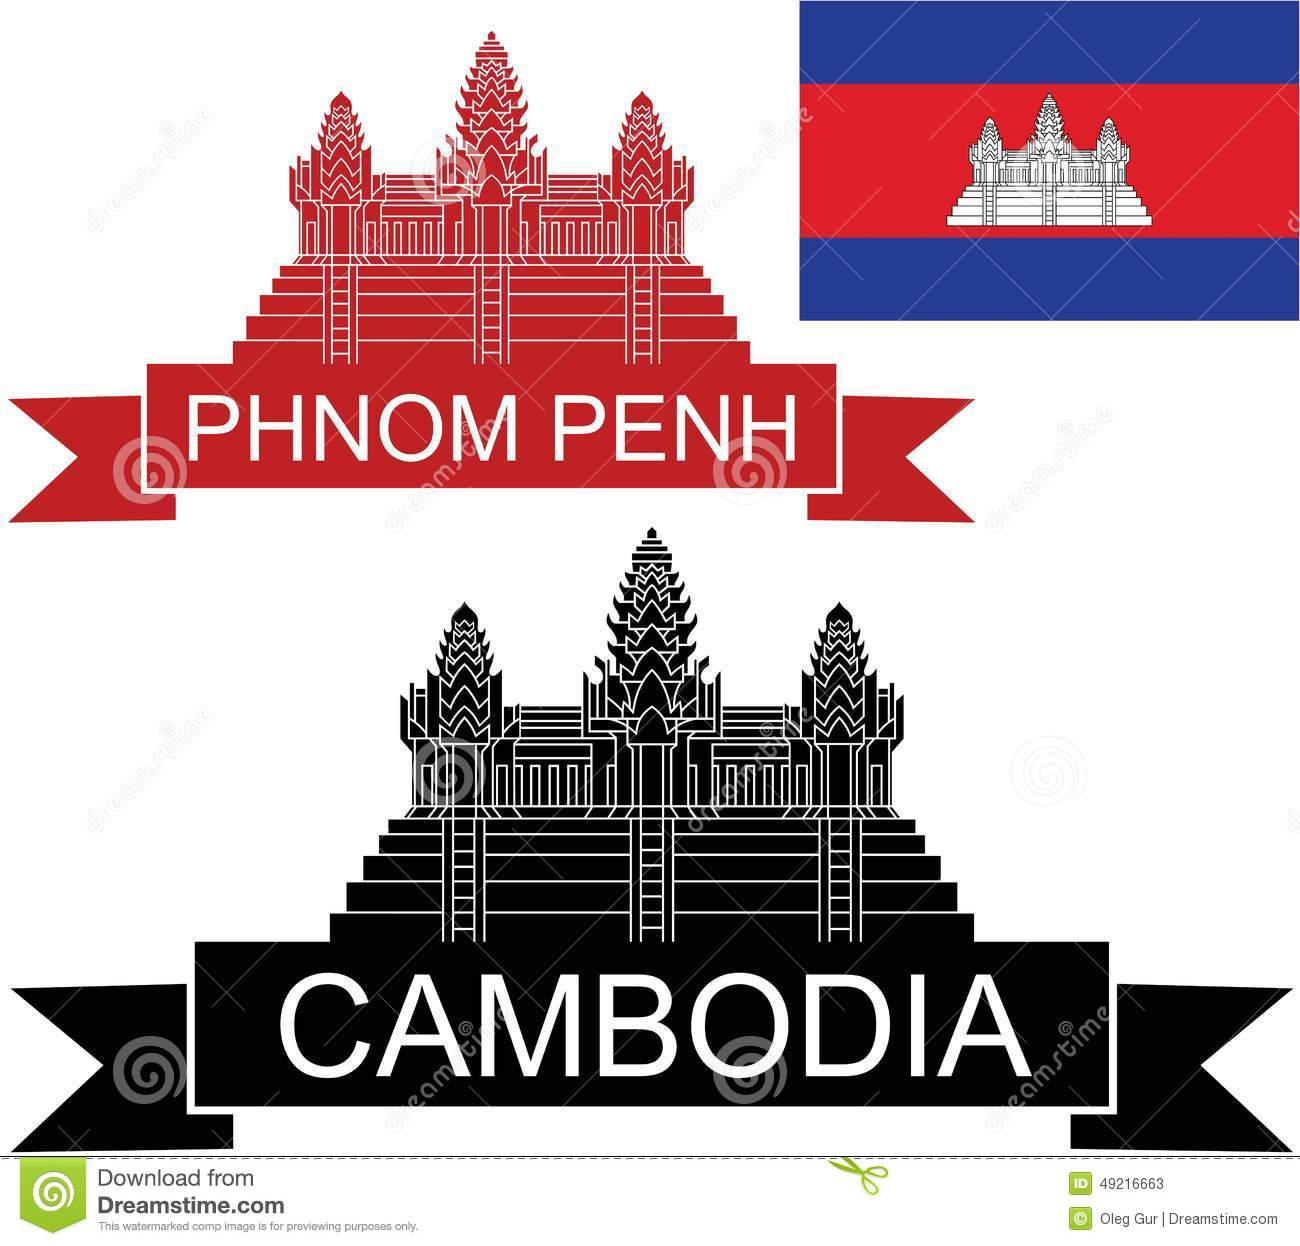 Black silhouette angkor wat illustration royalty free cliparts.